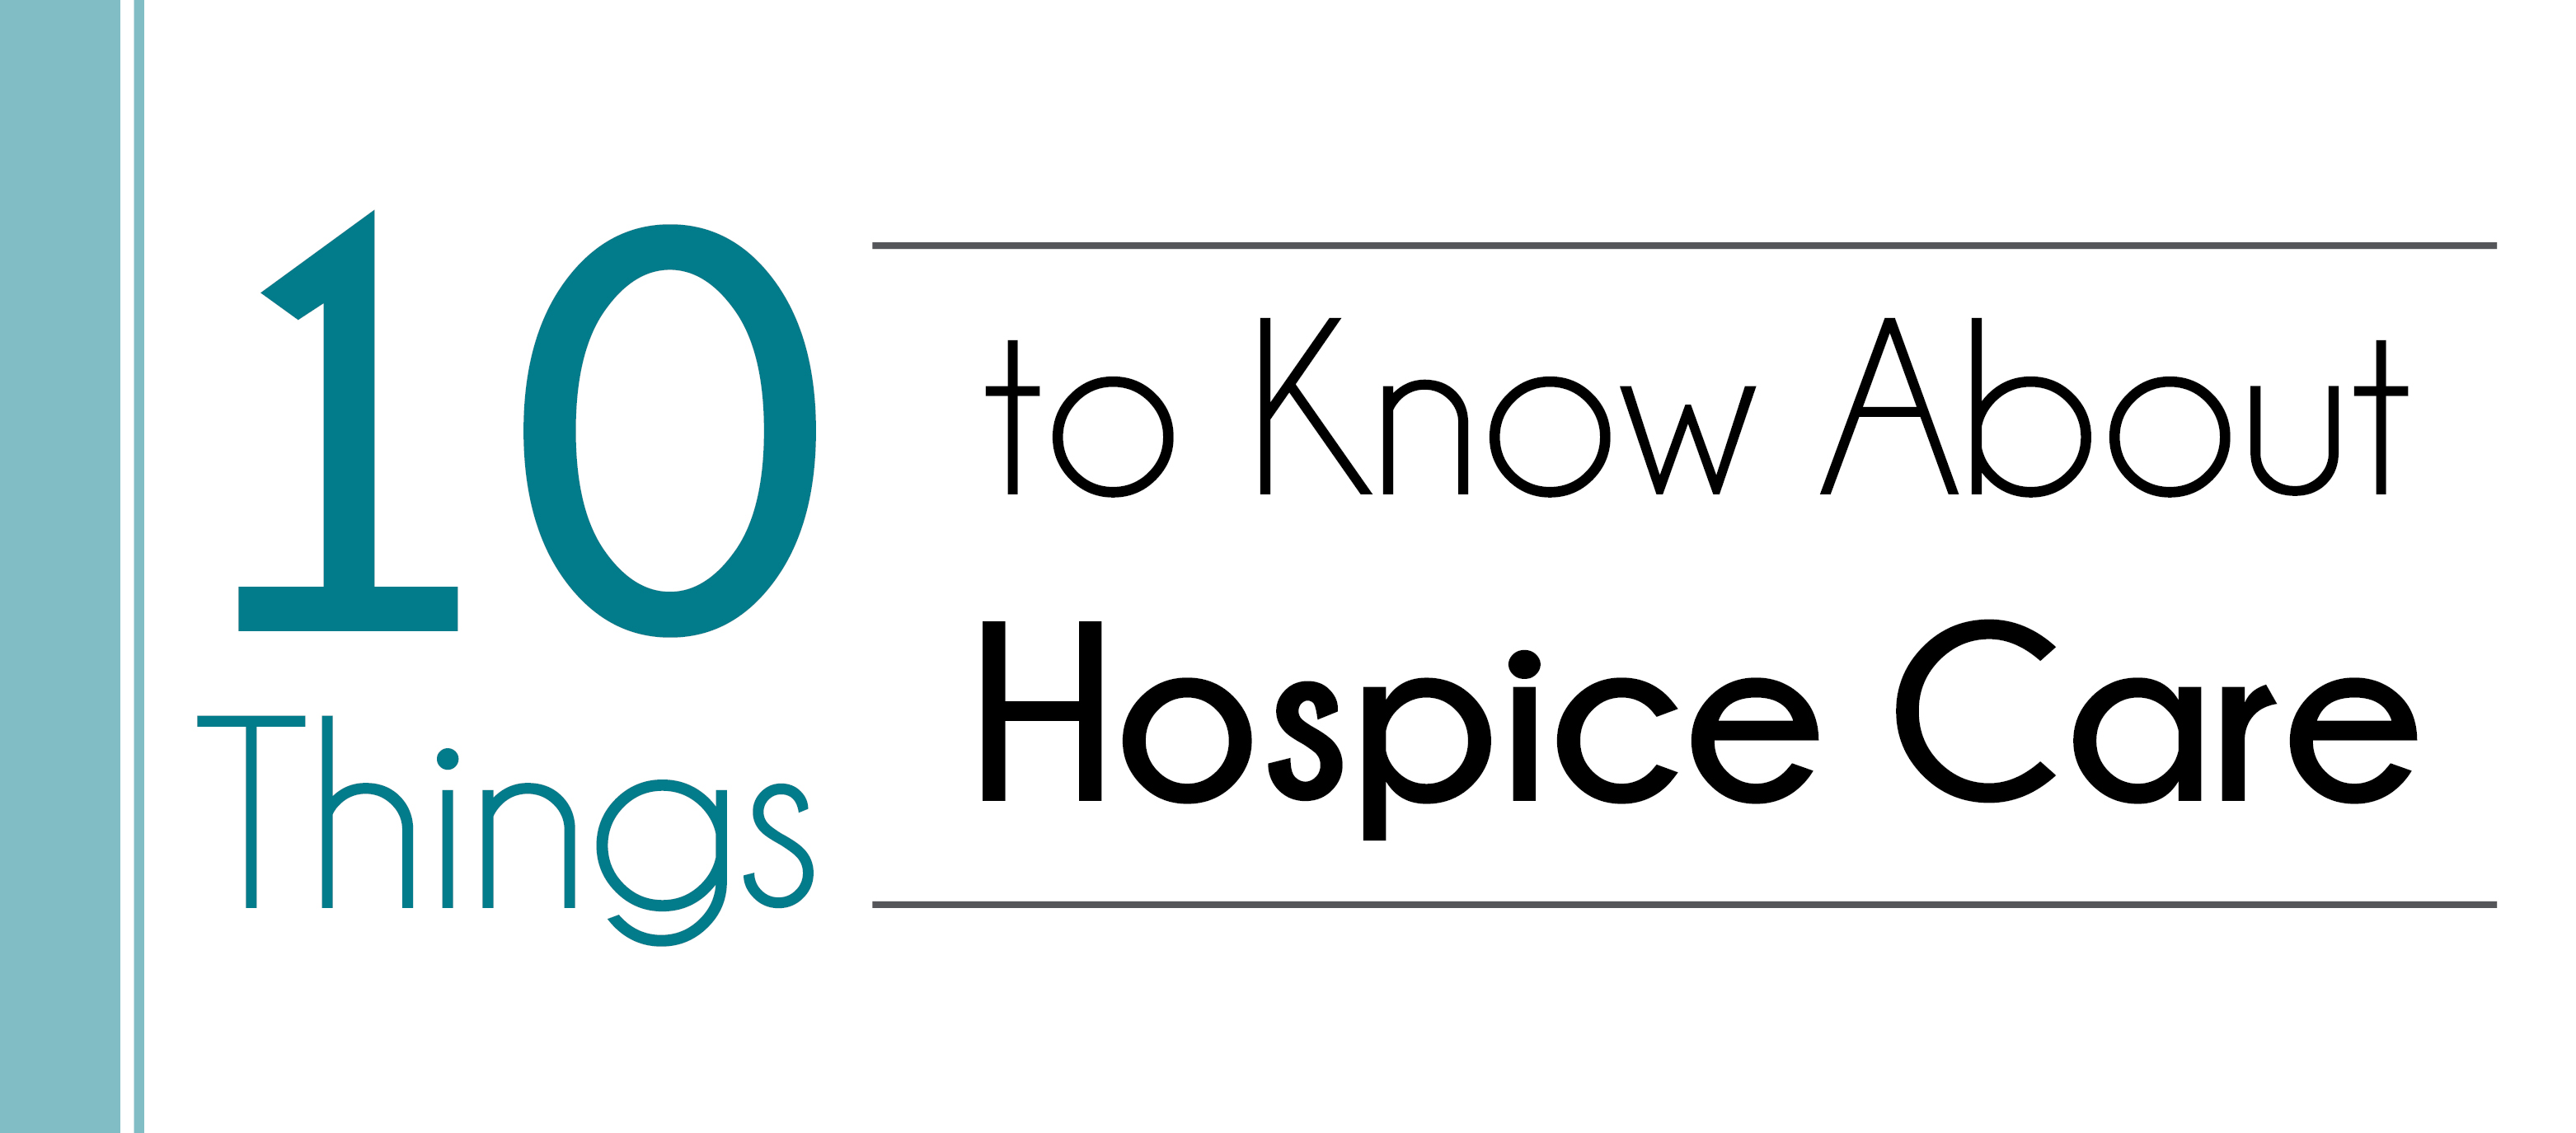 10 Things to Know About Hospice Care